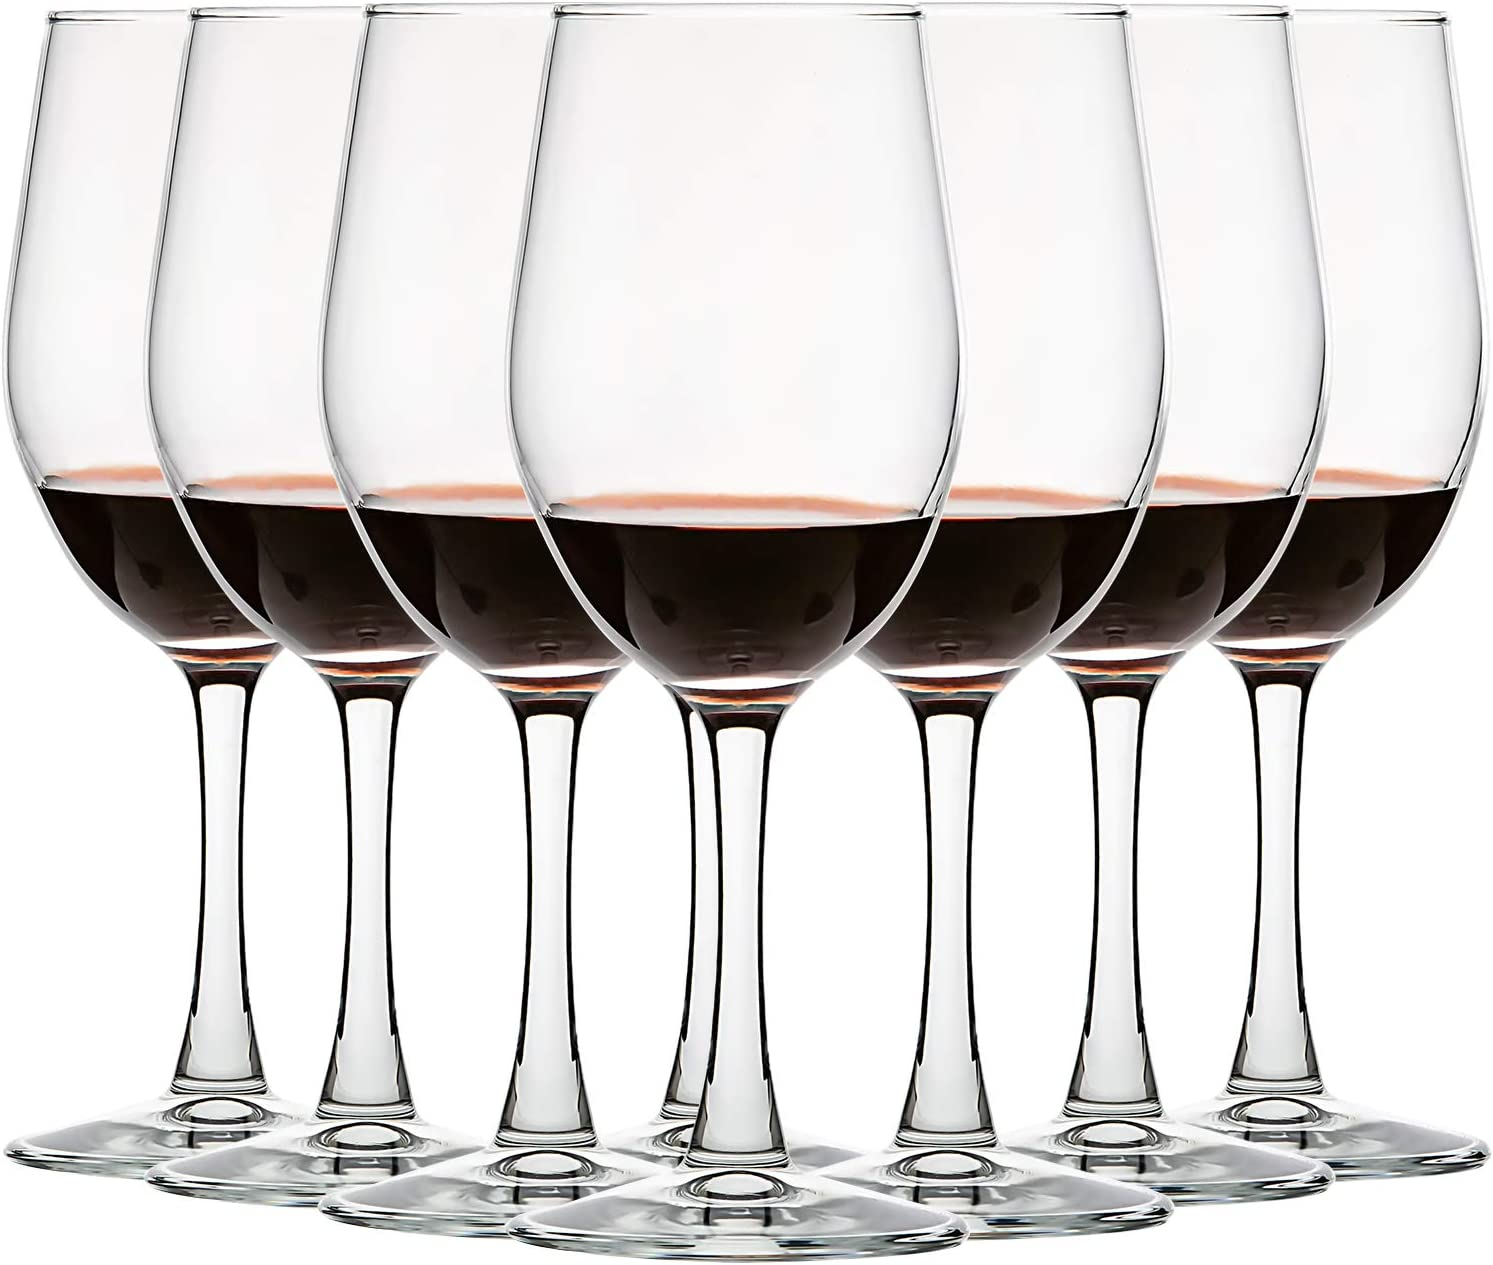 12oz Wine Glasses , American Style White or Red Wine Glasses Set of 8 , All-Purpose , Lead Free